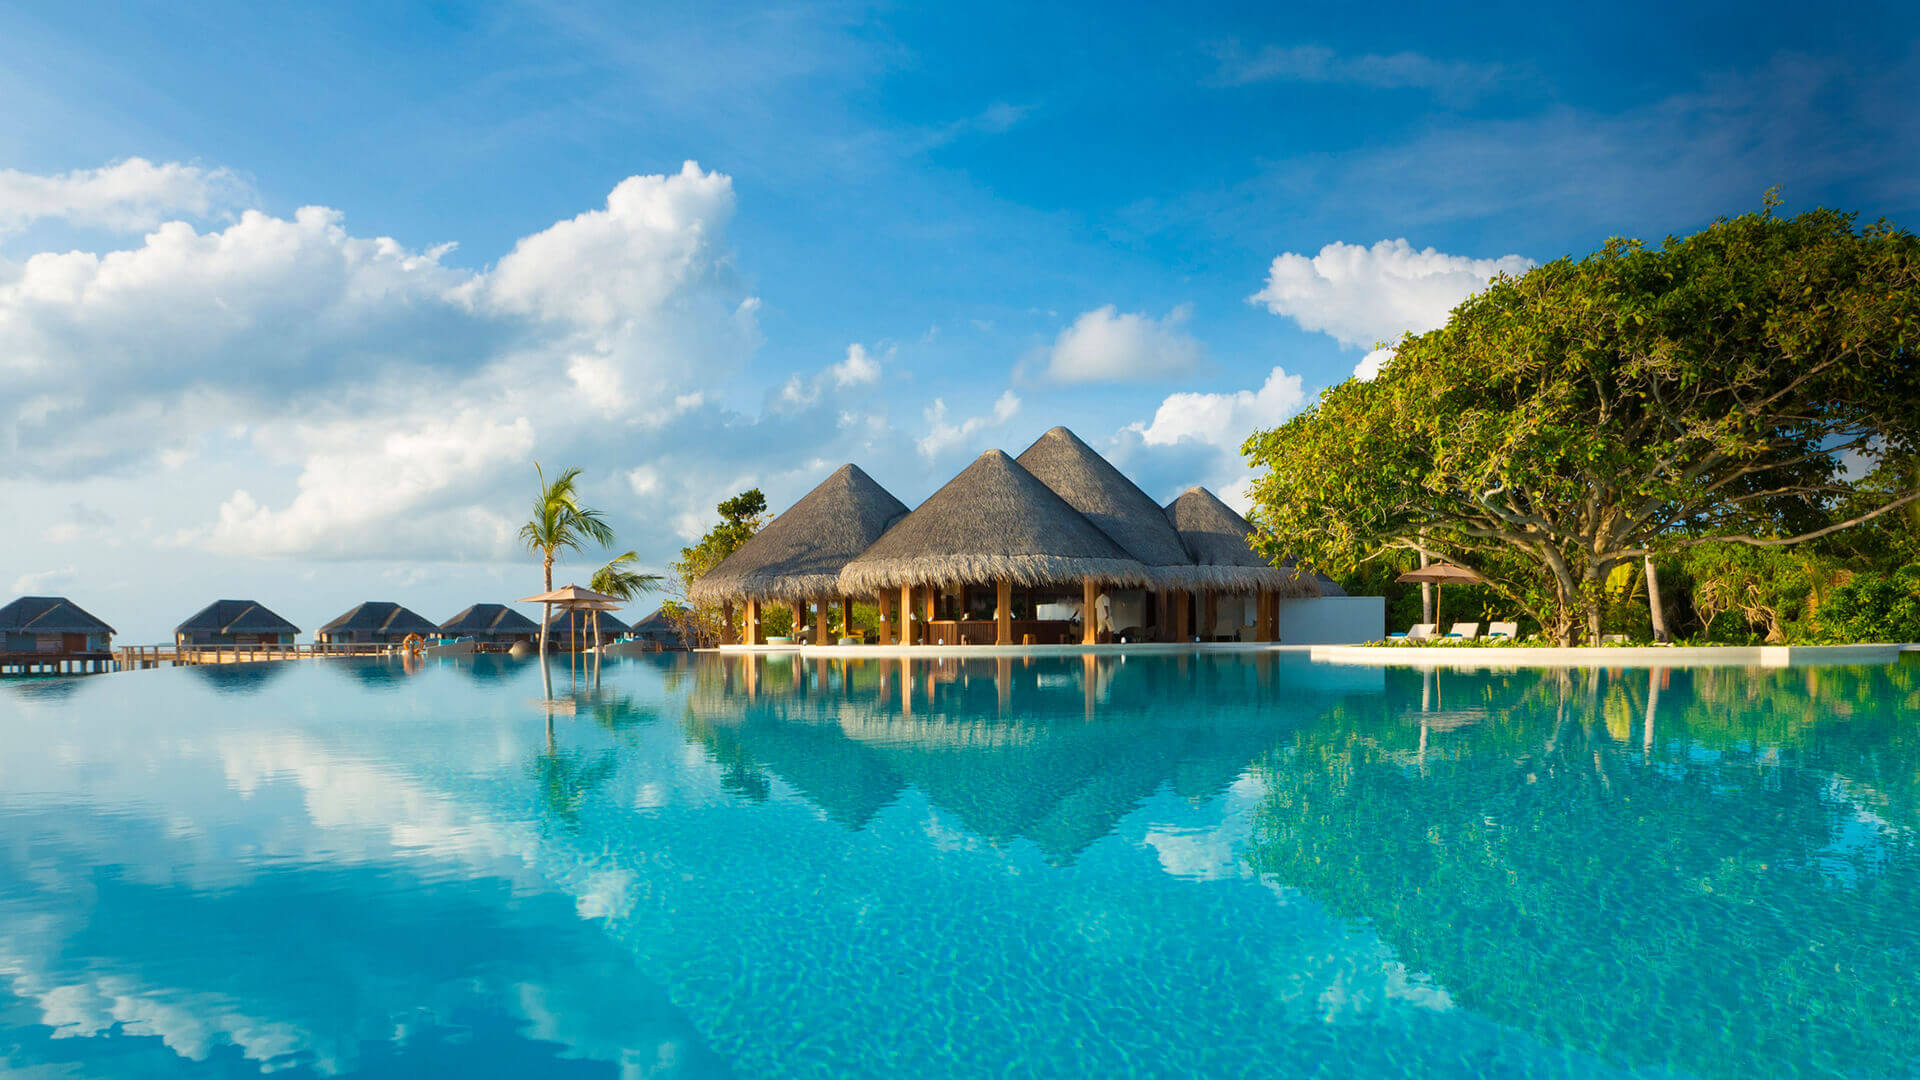 Destination: Marvelous Maldives